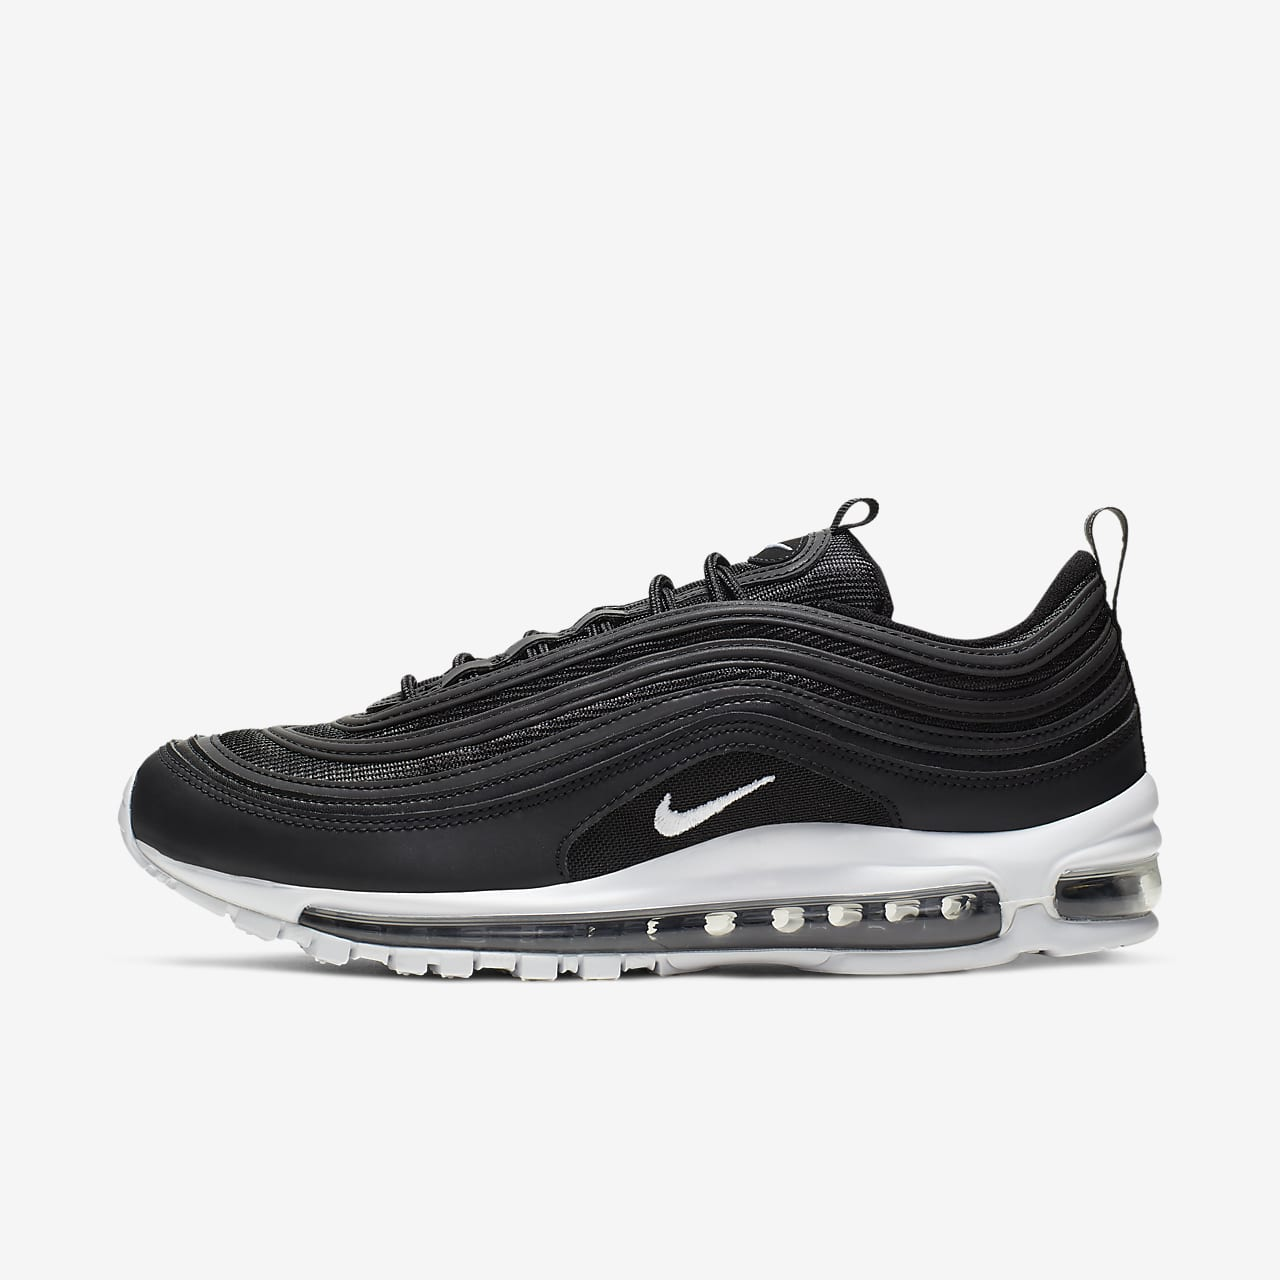 air max 97 herren nike air max 97 gold buy herren nike. Black Bedroom Furniture Sets. Home Design Ideas